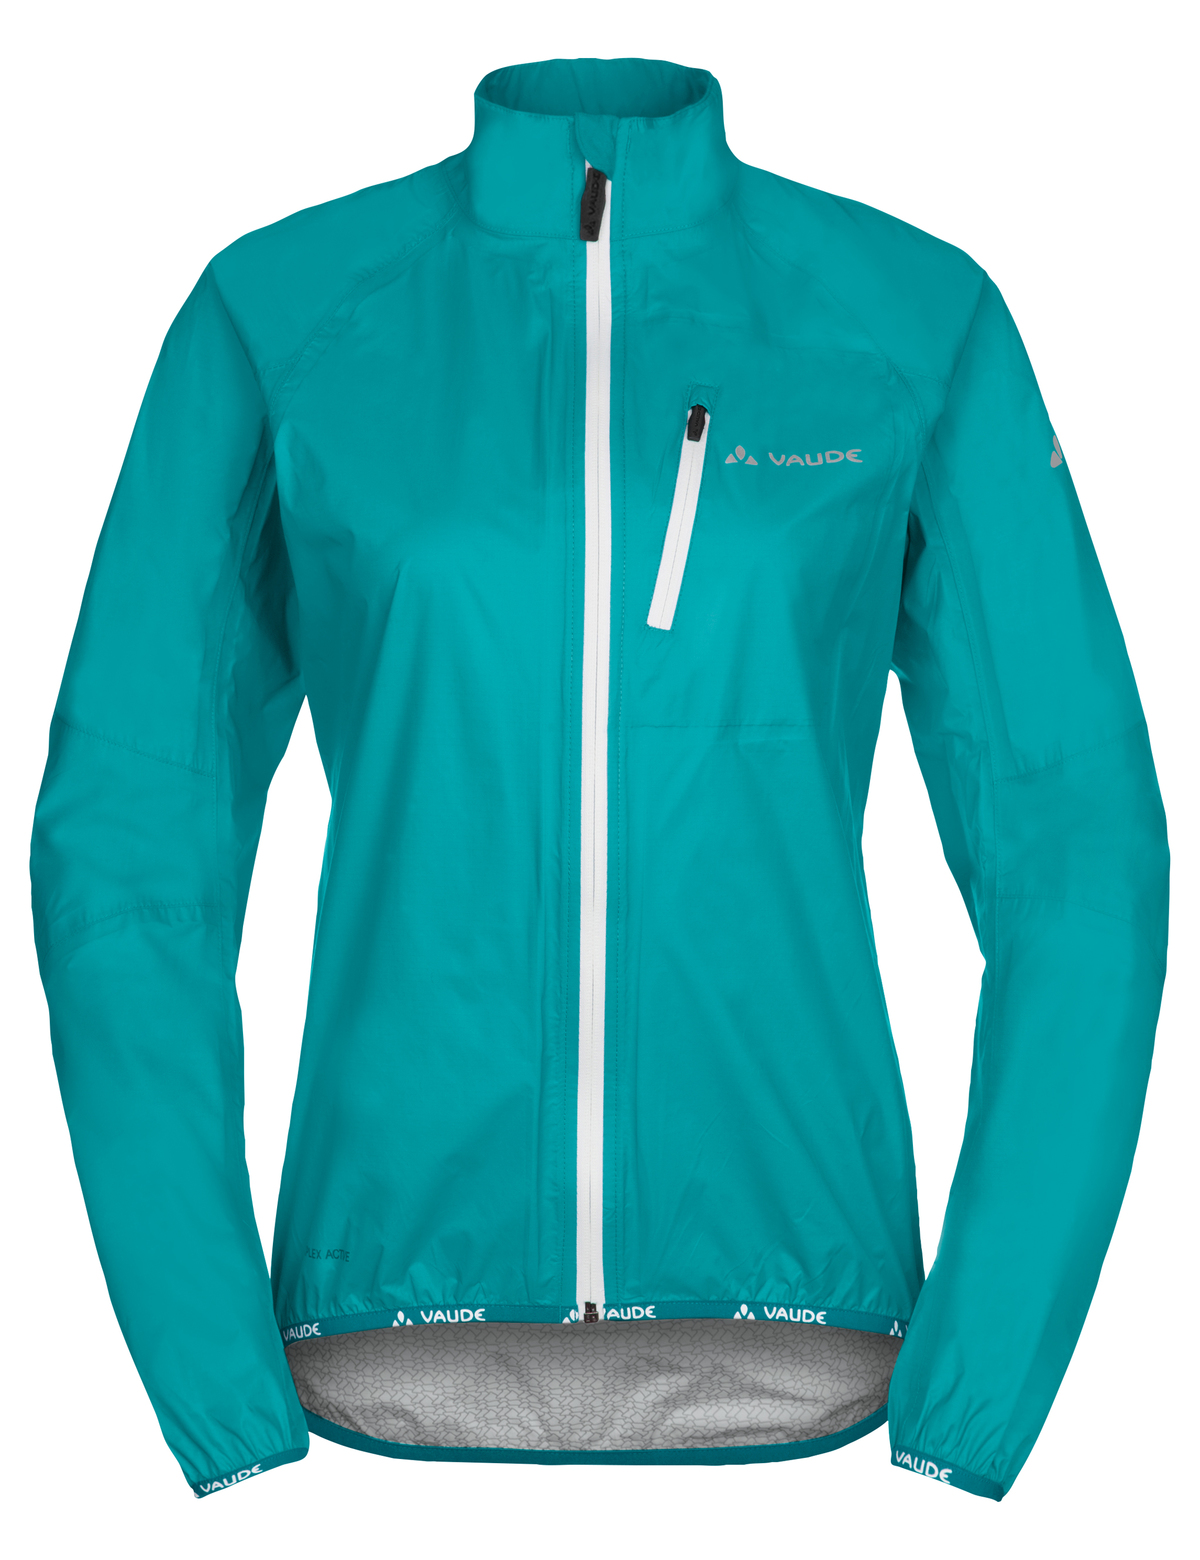 VAUDE Women´s Drop Jacket III reef Größe 40 - VAUDE Women´s Drop Jacket III reef Größe 40